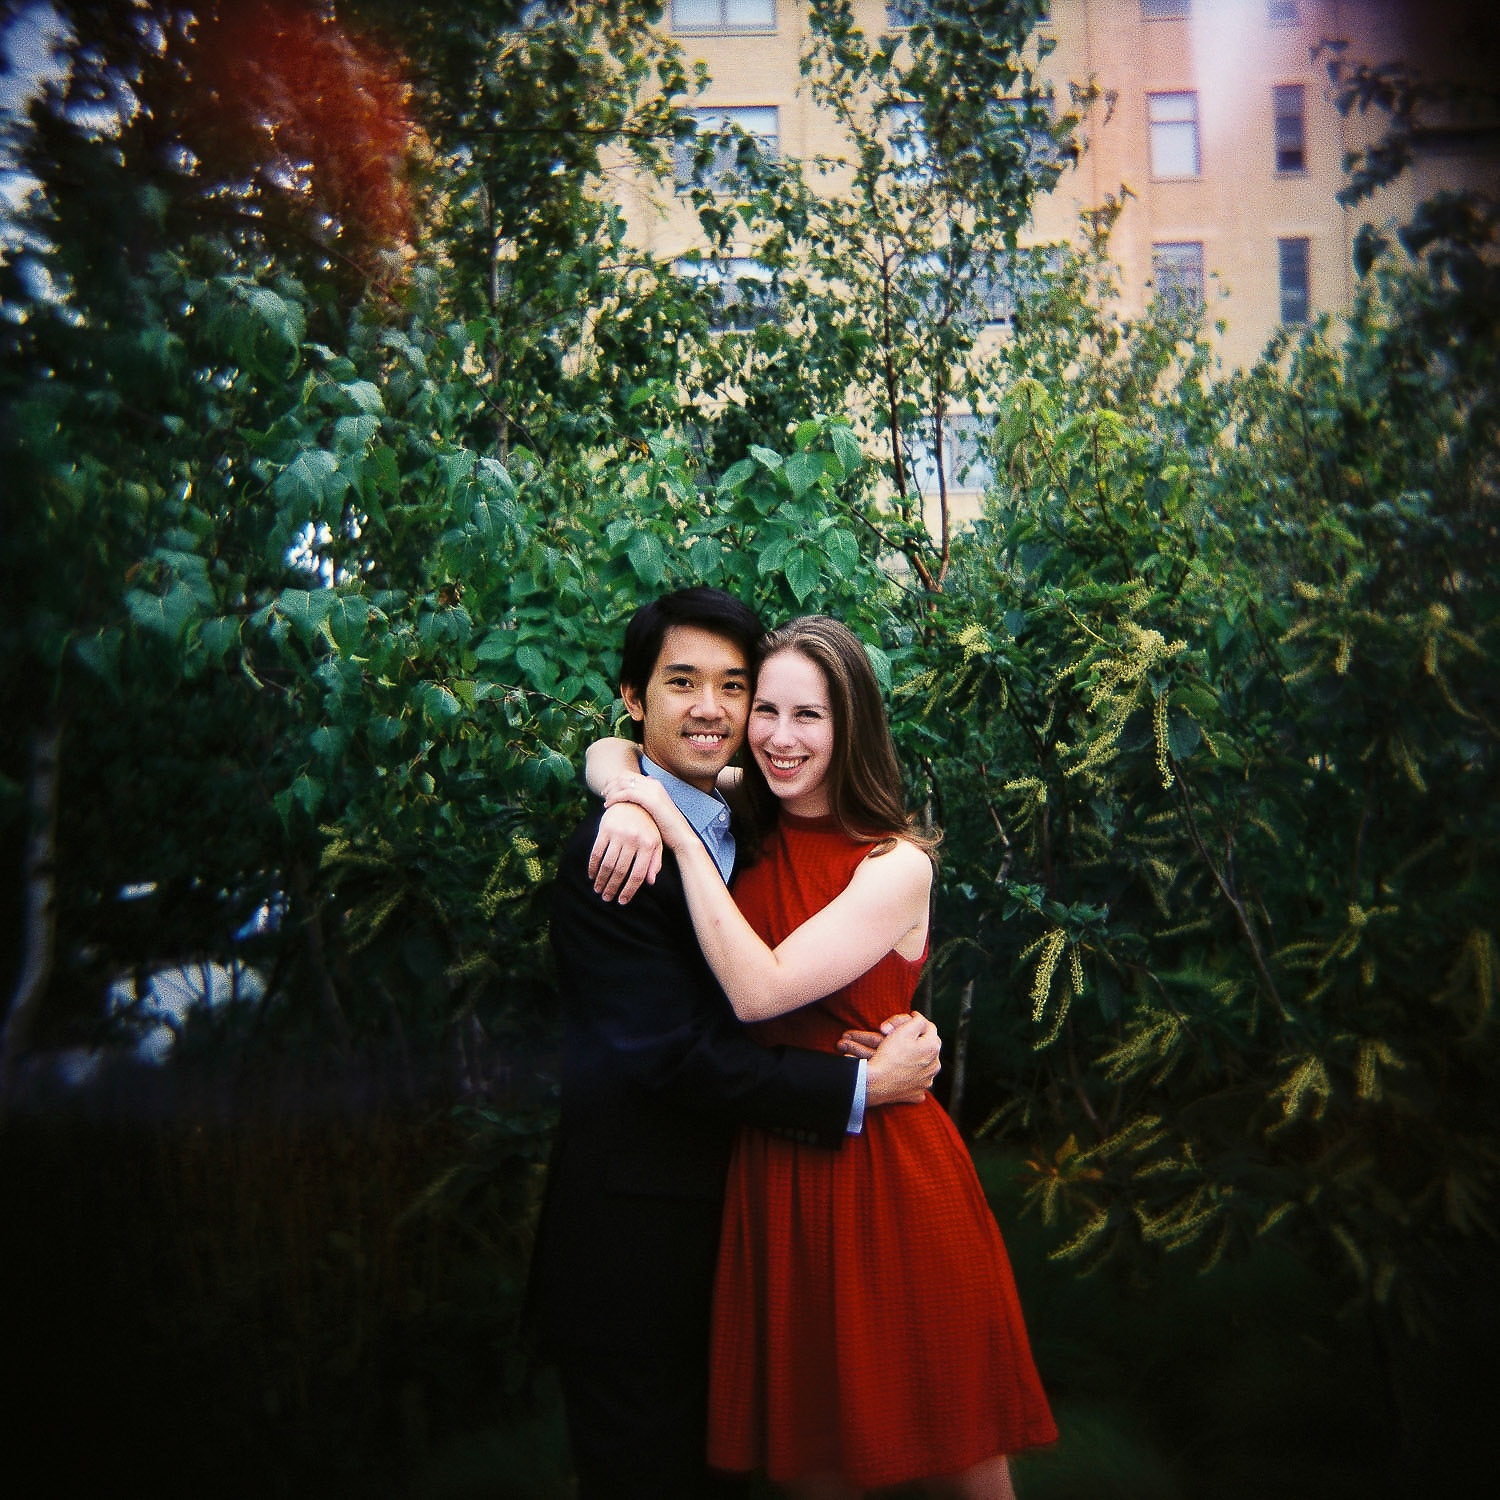 holga engagement portrait at high line taken by nyc wedding photographer wendy g